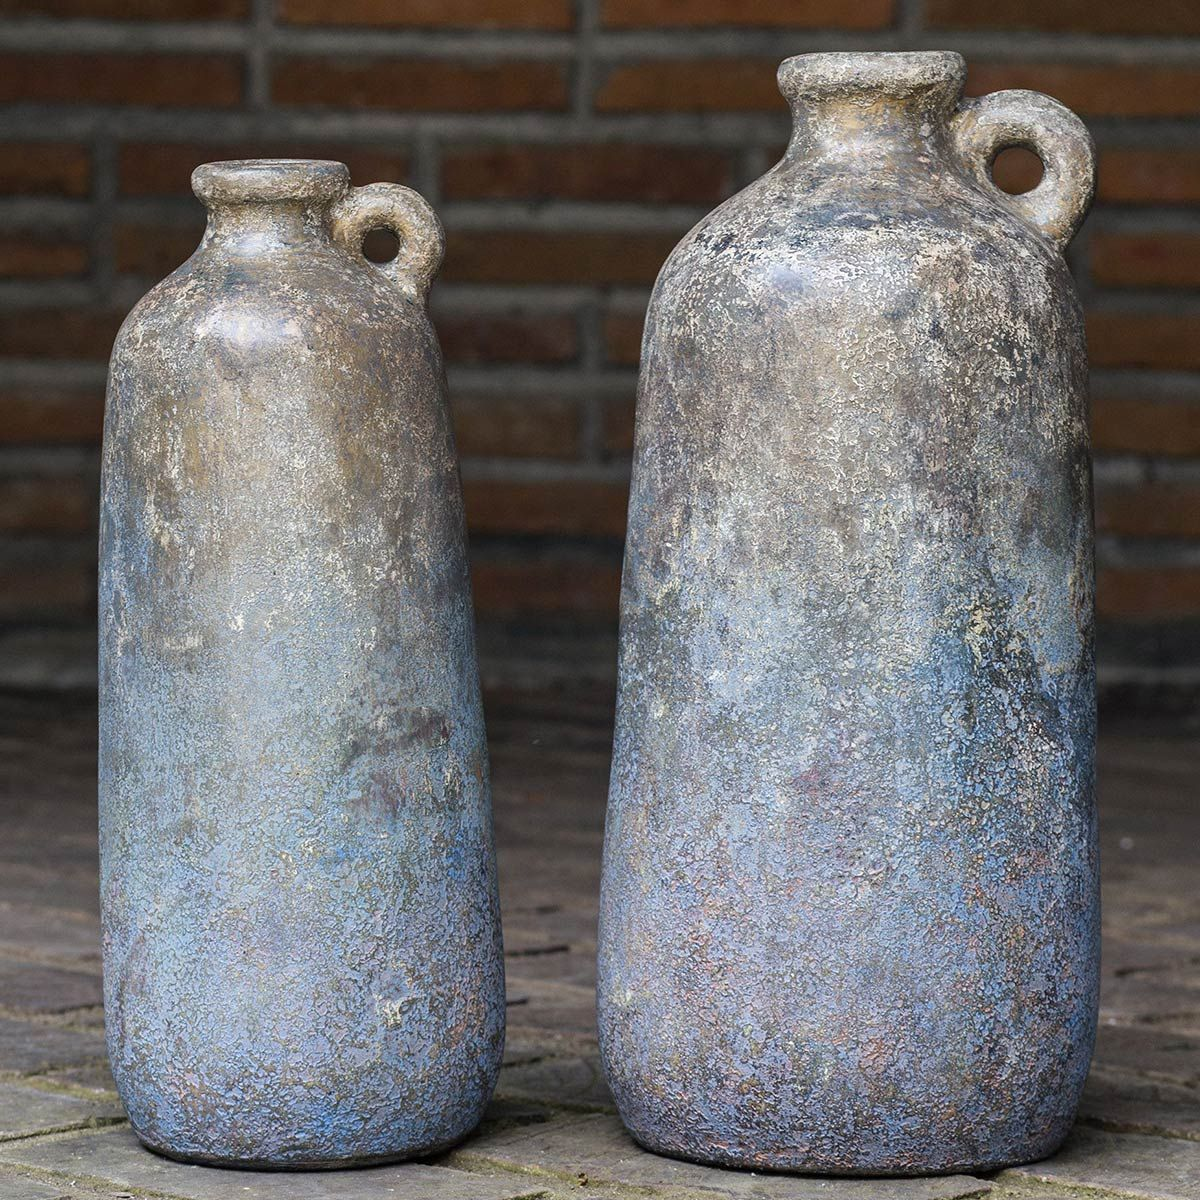 Ragini Terracotta Bottles - Set of 2